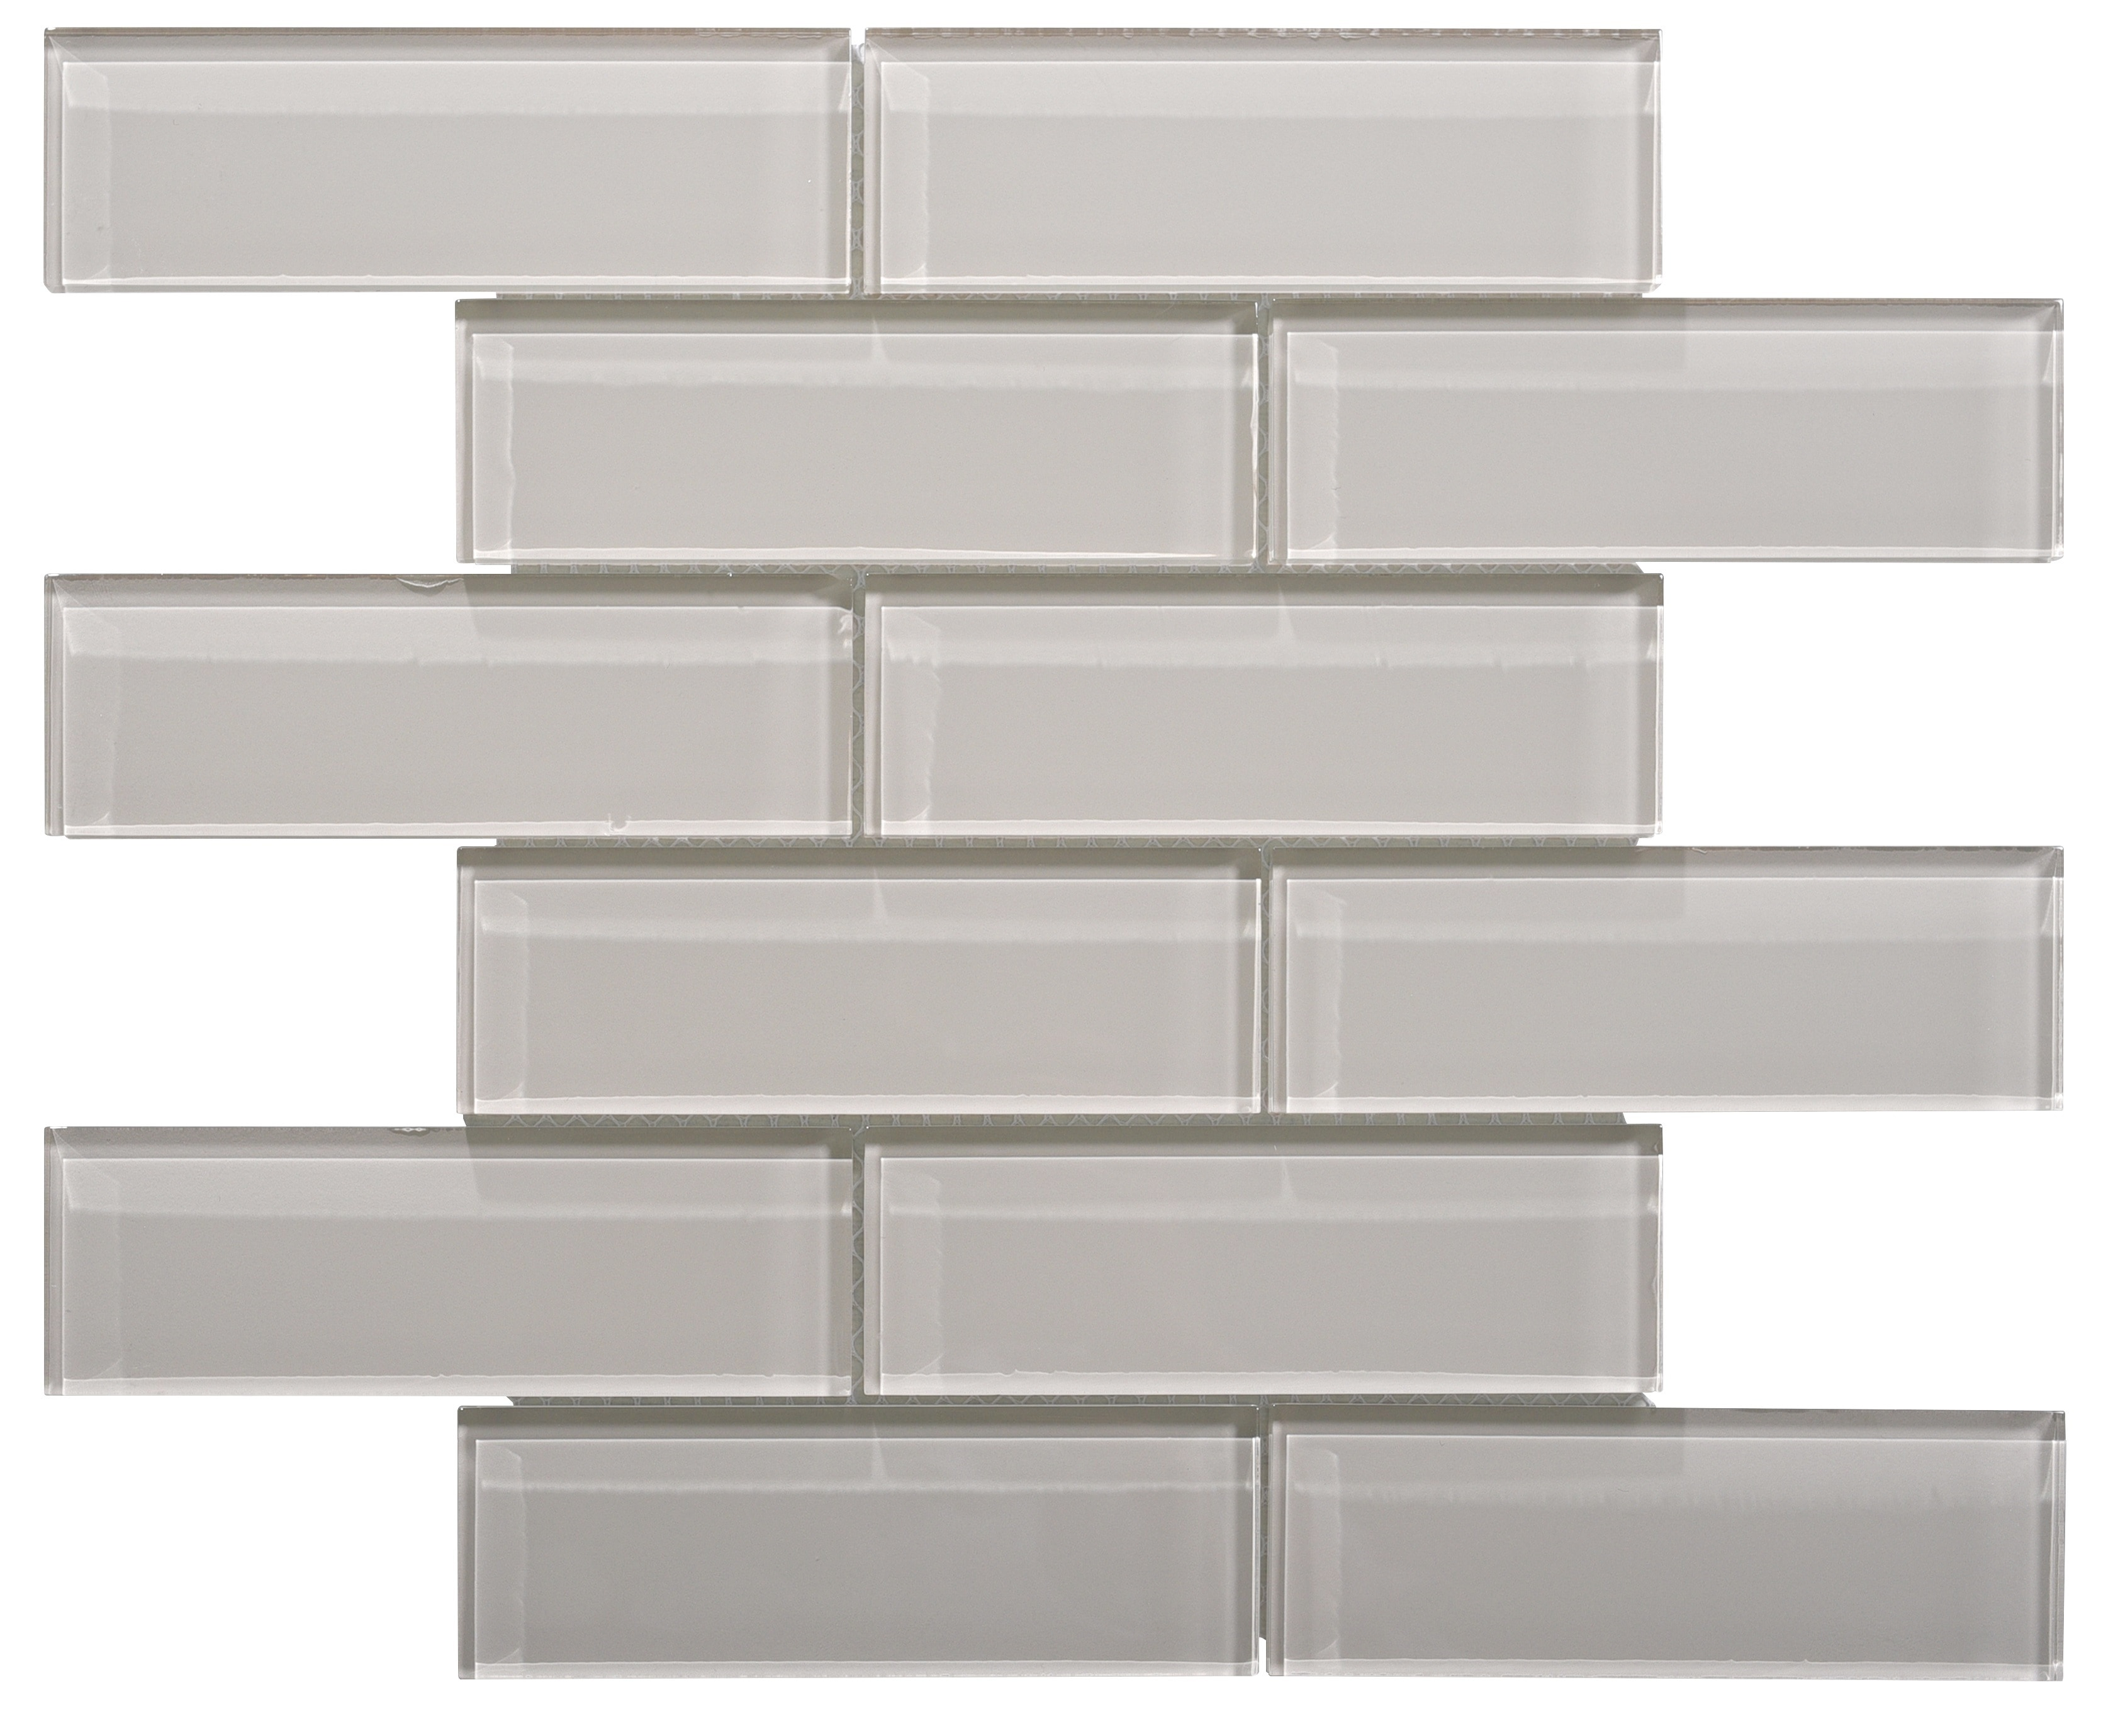 Glass Mosaic / 16 x 12 x 0.31 inches / Glossy Small Glass Subway Tile In Icy Gray 0